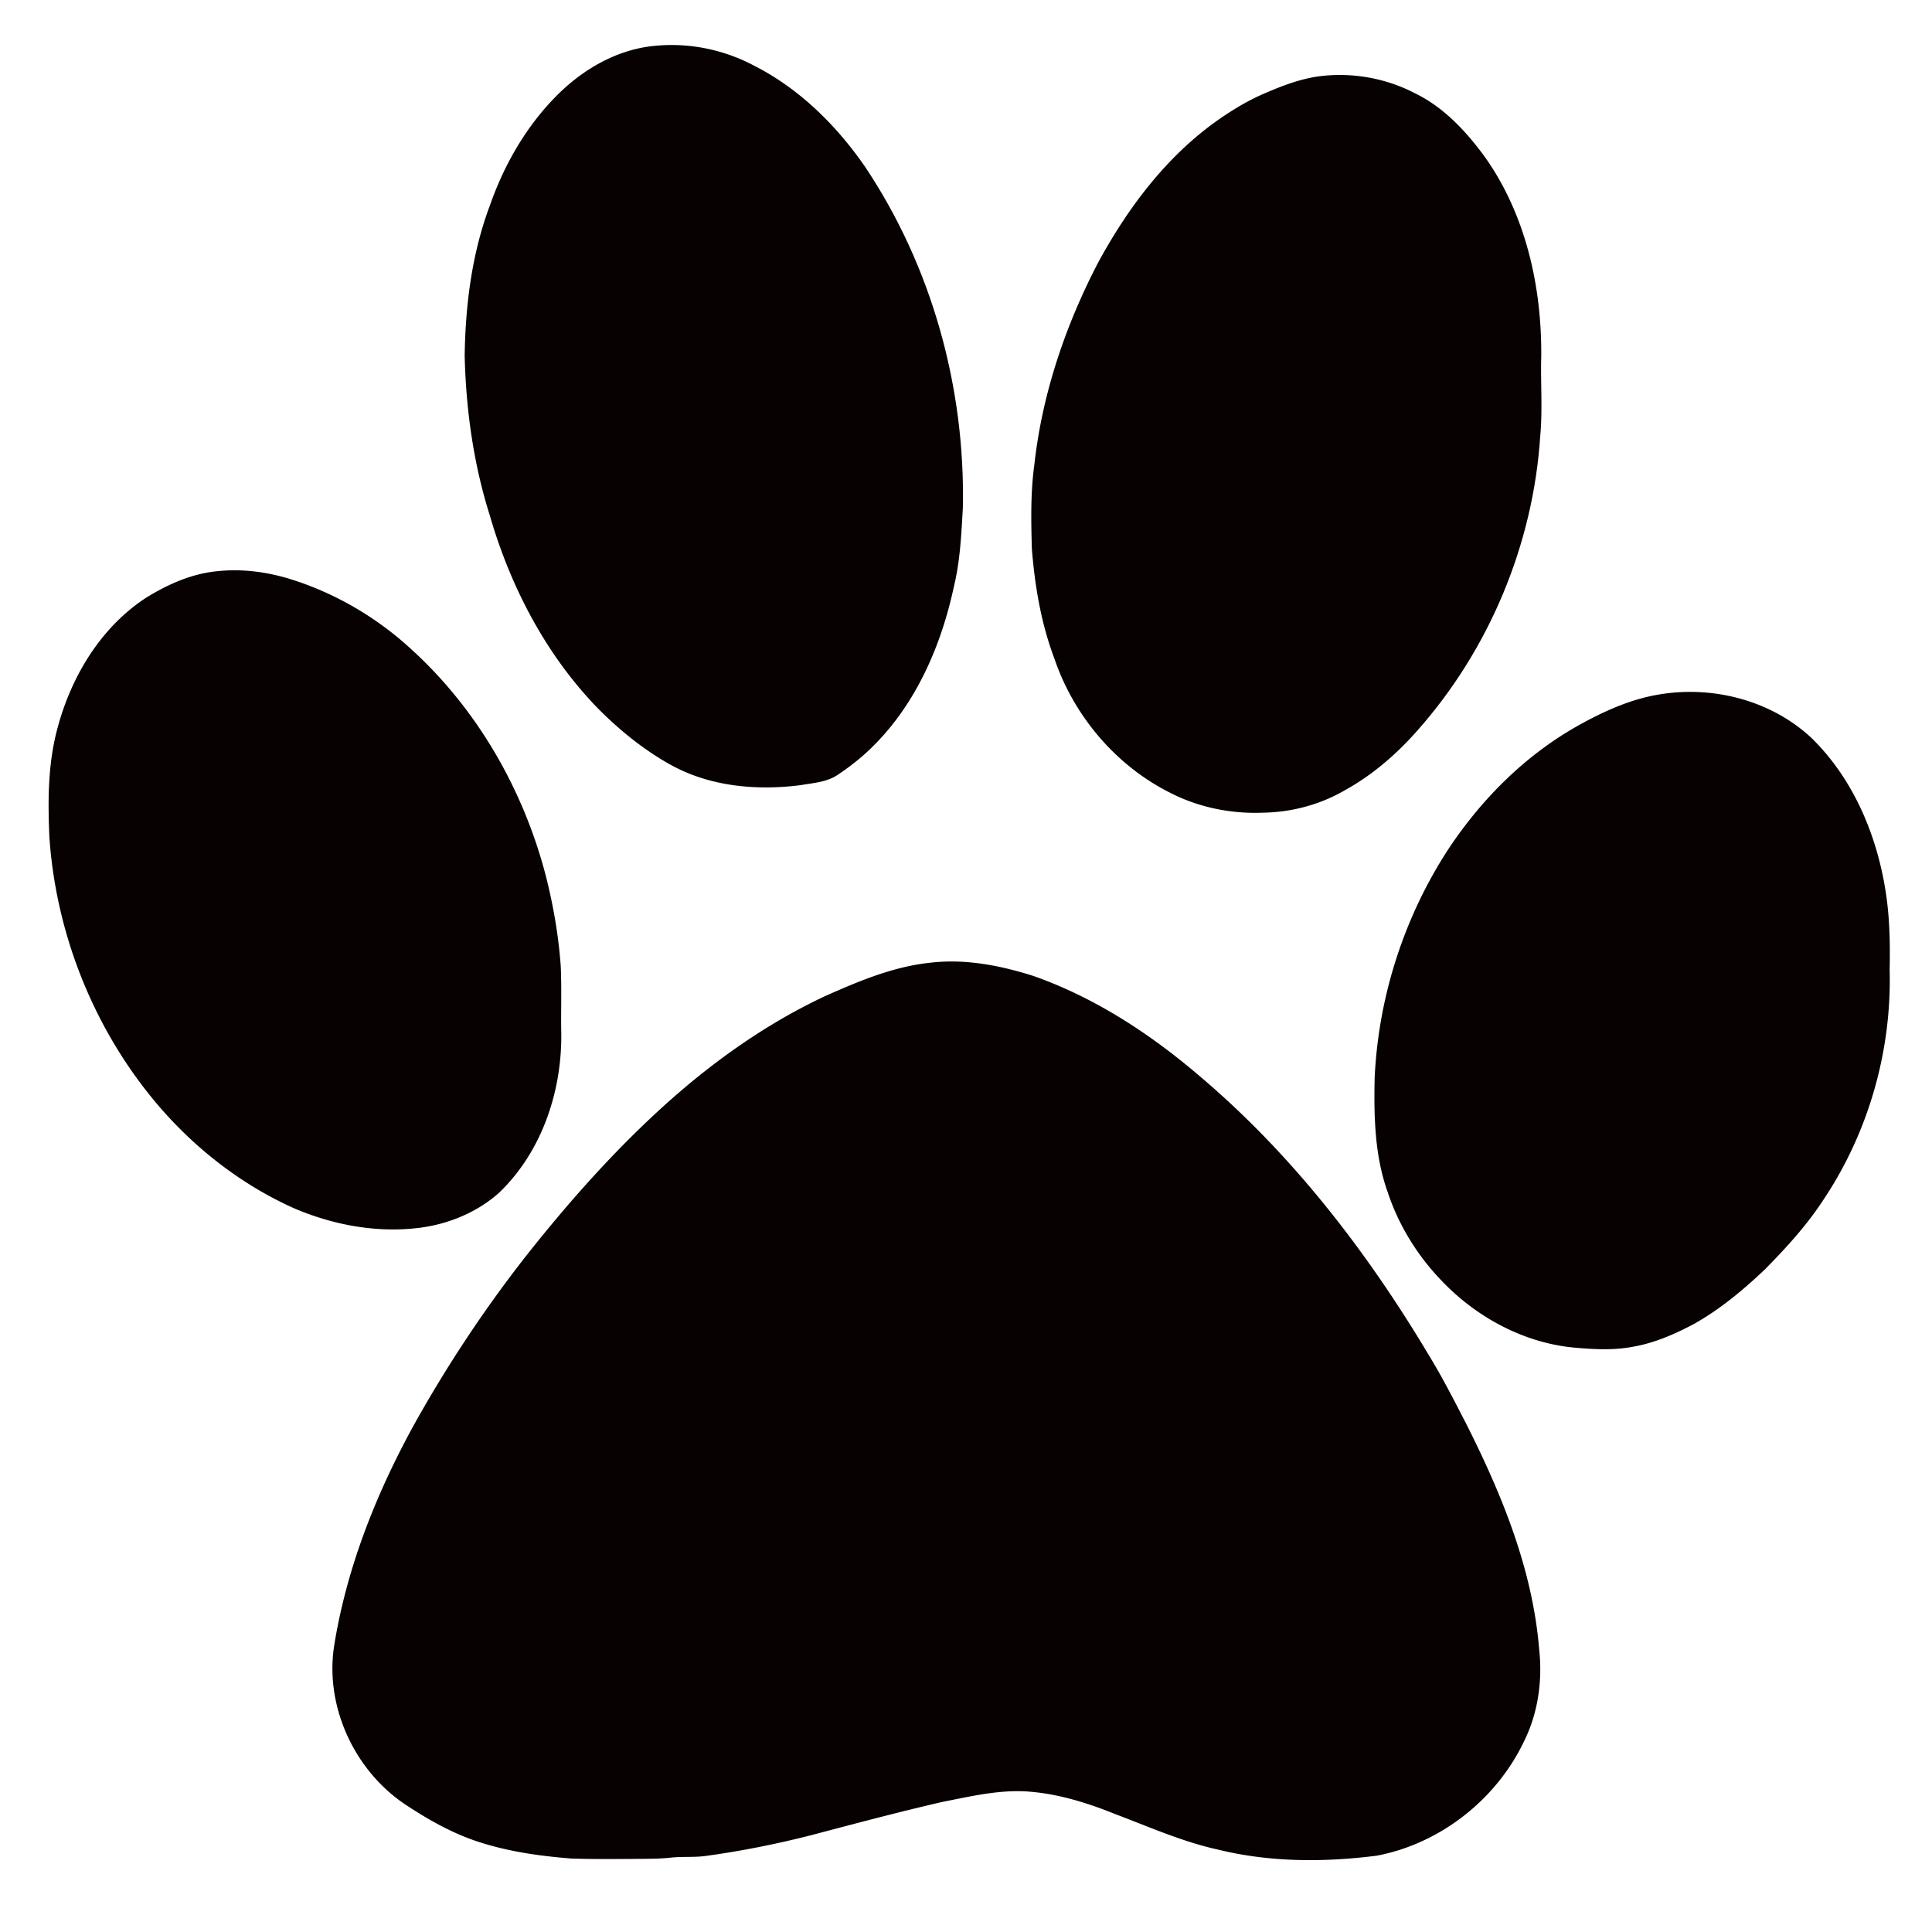 Transparent paw tiger. Png hd images pluspng